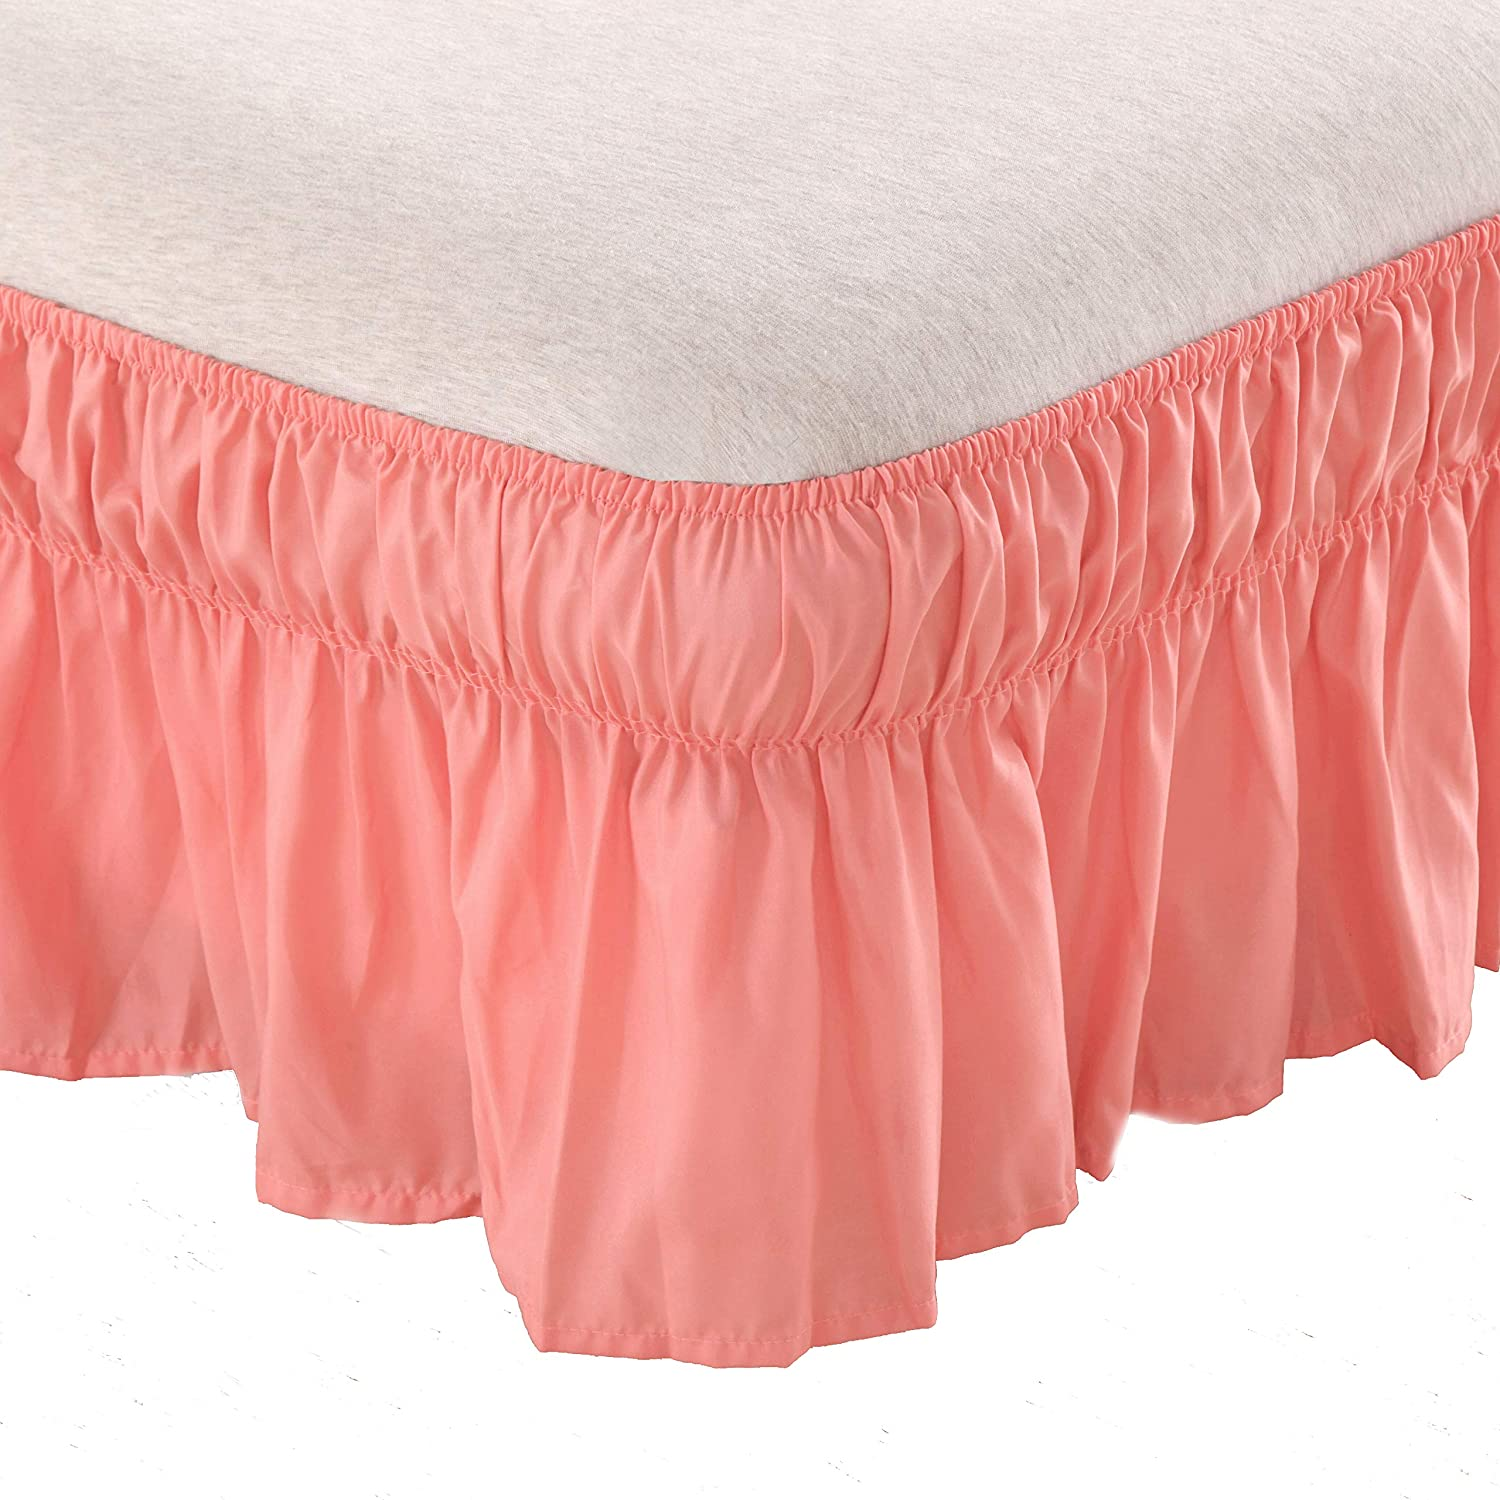 Bed Skirt-14 Inch Drop Wrap Around Ruffled (Twin/Full, White) Brushed Microfiber 1500 Adjustable Elastic Easy Fit AYASW